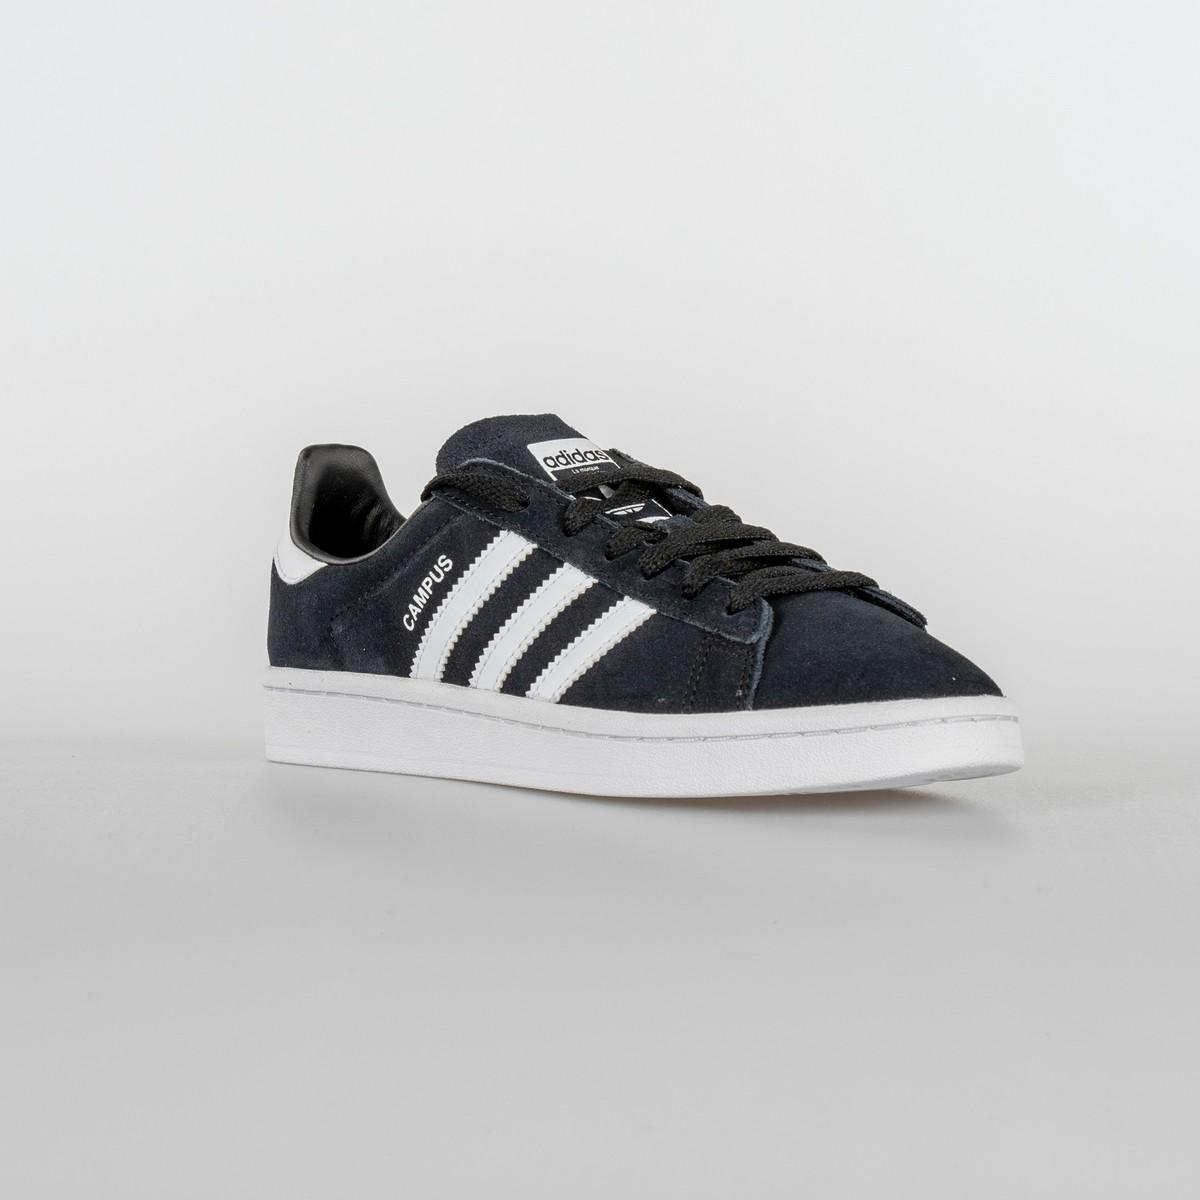 SCARPA DONNA ADIDAS CAMPUS J BY9580 BLACK WHITE